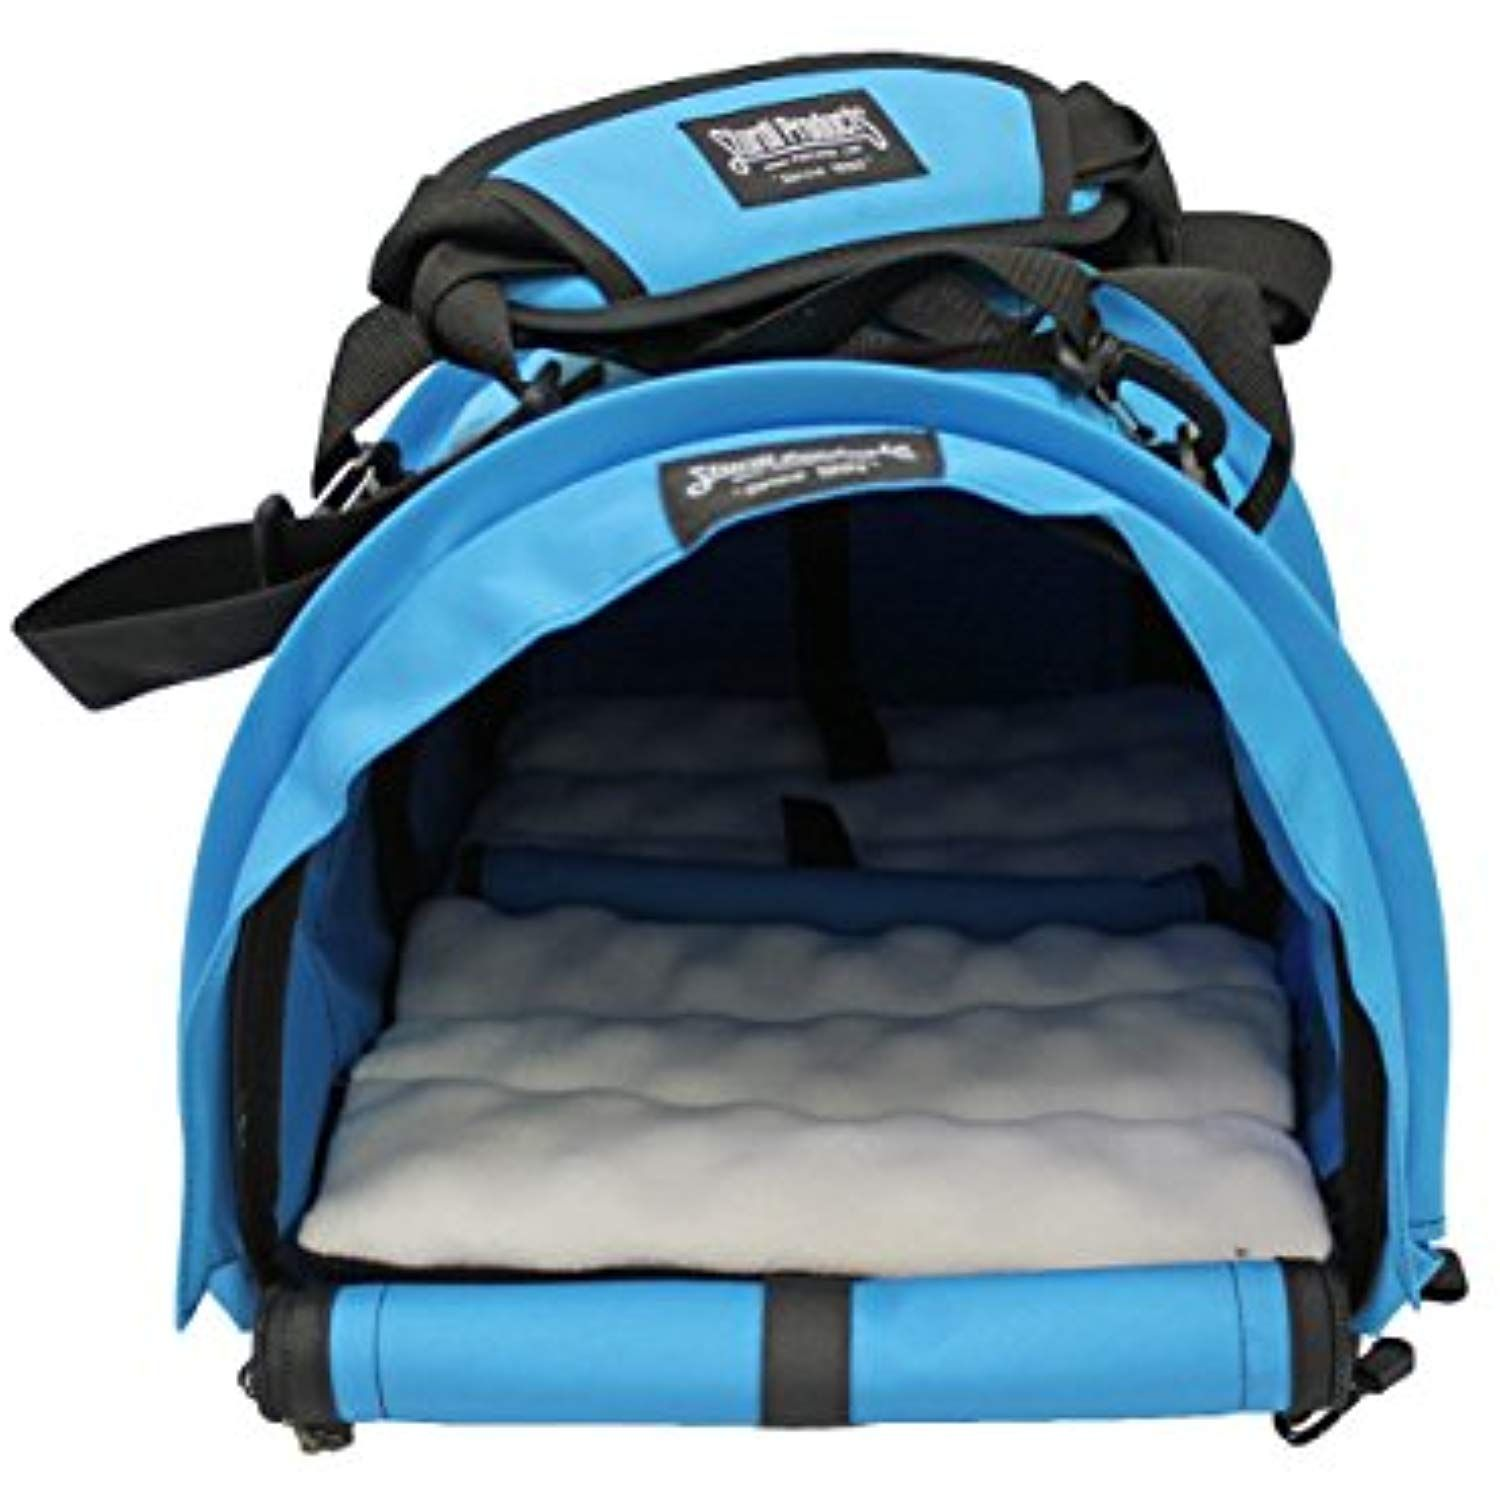 ece1a6d0c9 Sturdi Products Bag Double Sided Divided Pet Carrier, Large, Blue Jay *  Check out this great product. (This is an affiliate link) #cats